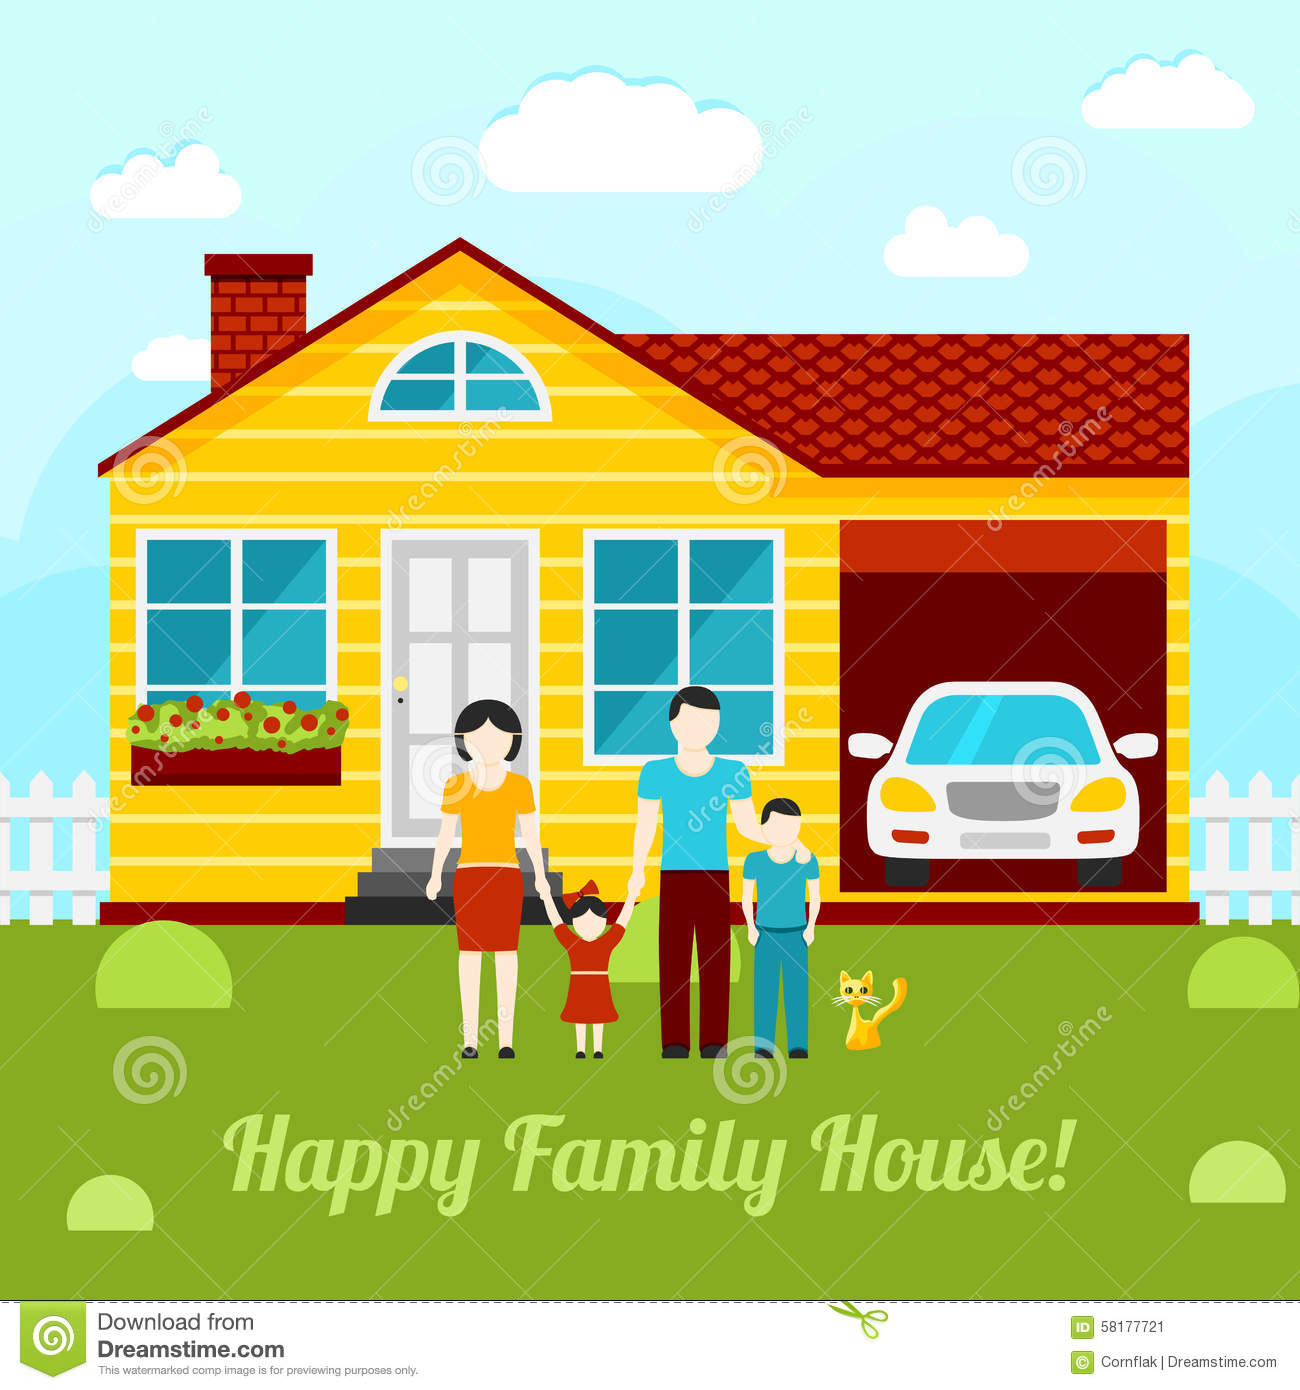 Happy Family House Concept Illustration.